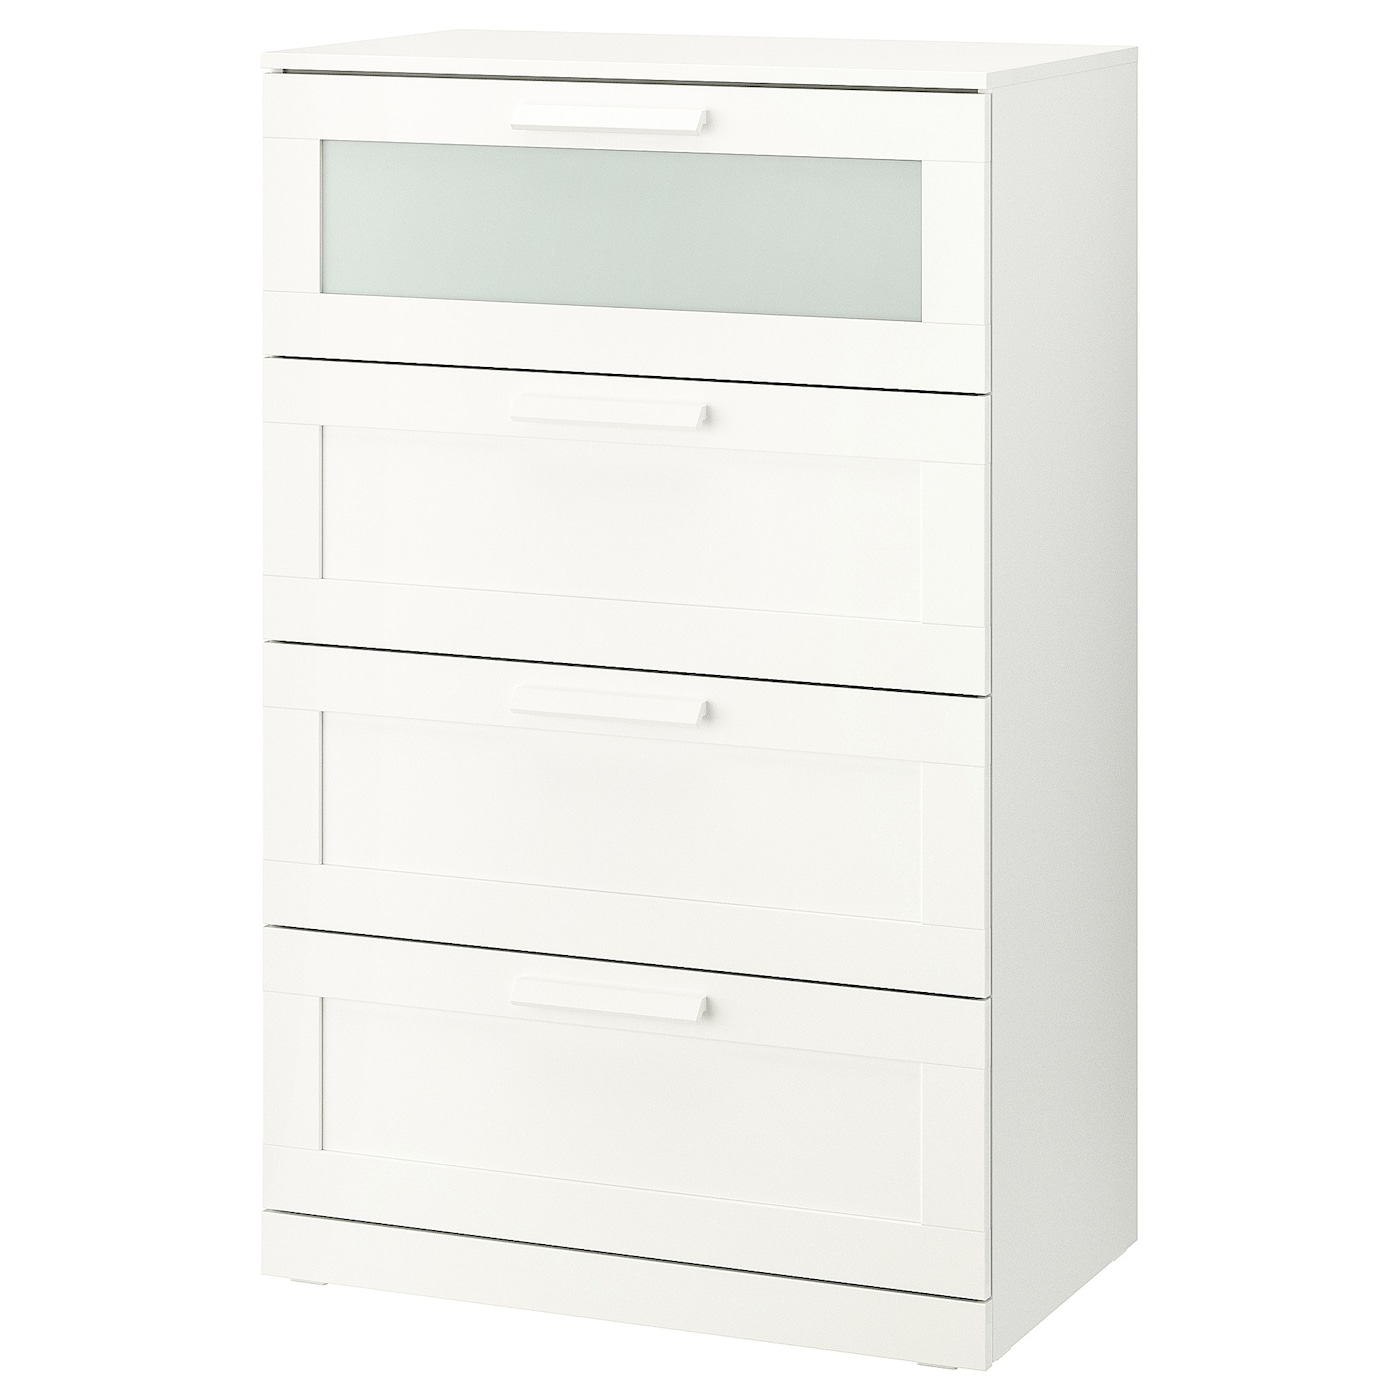 Chest of Drawers - Dressers - IKEA